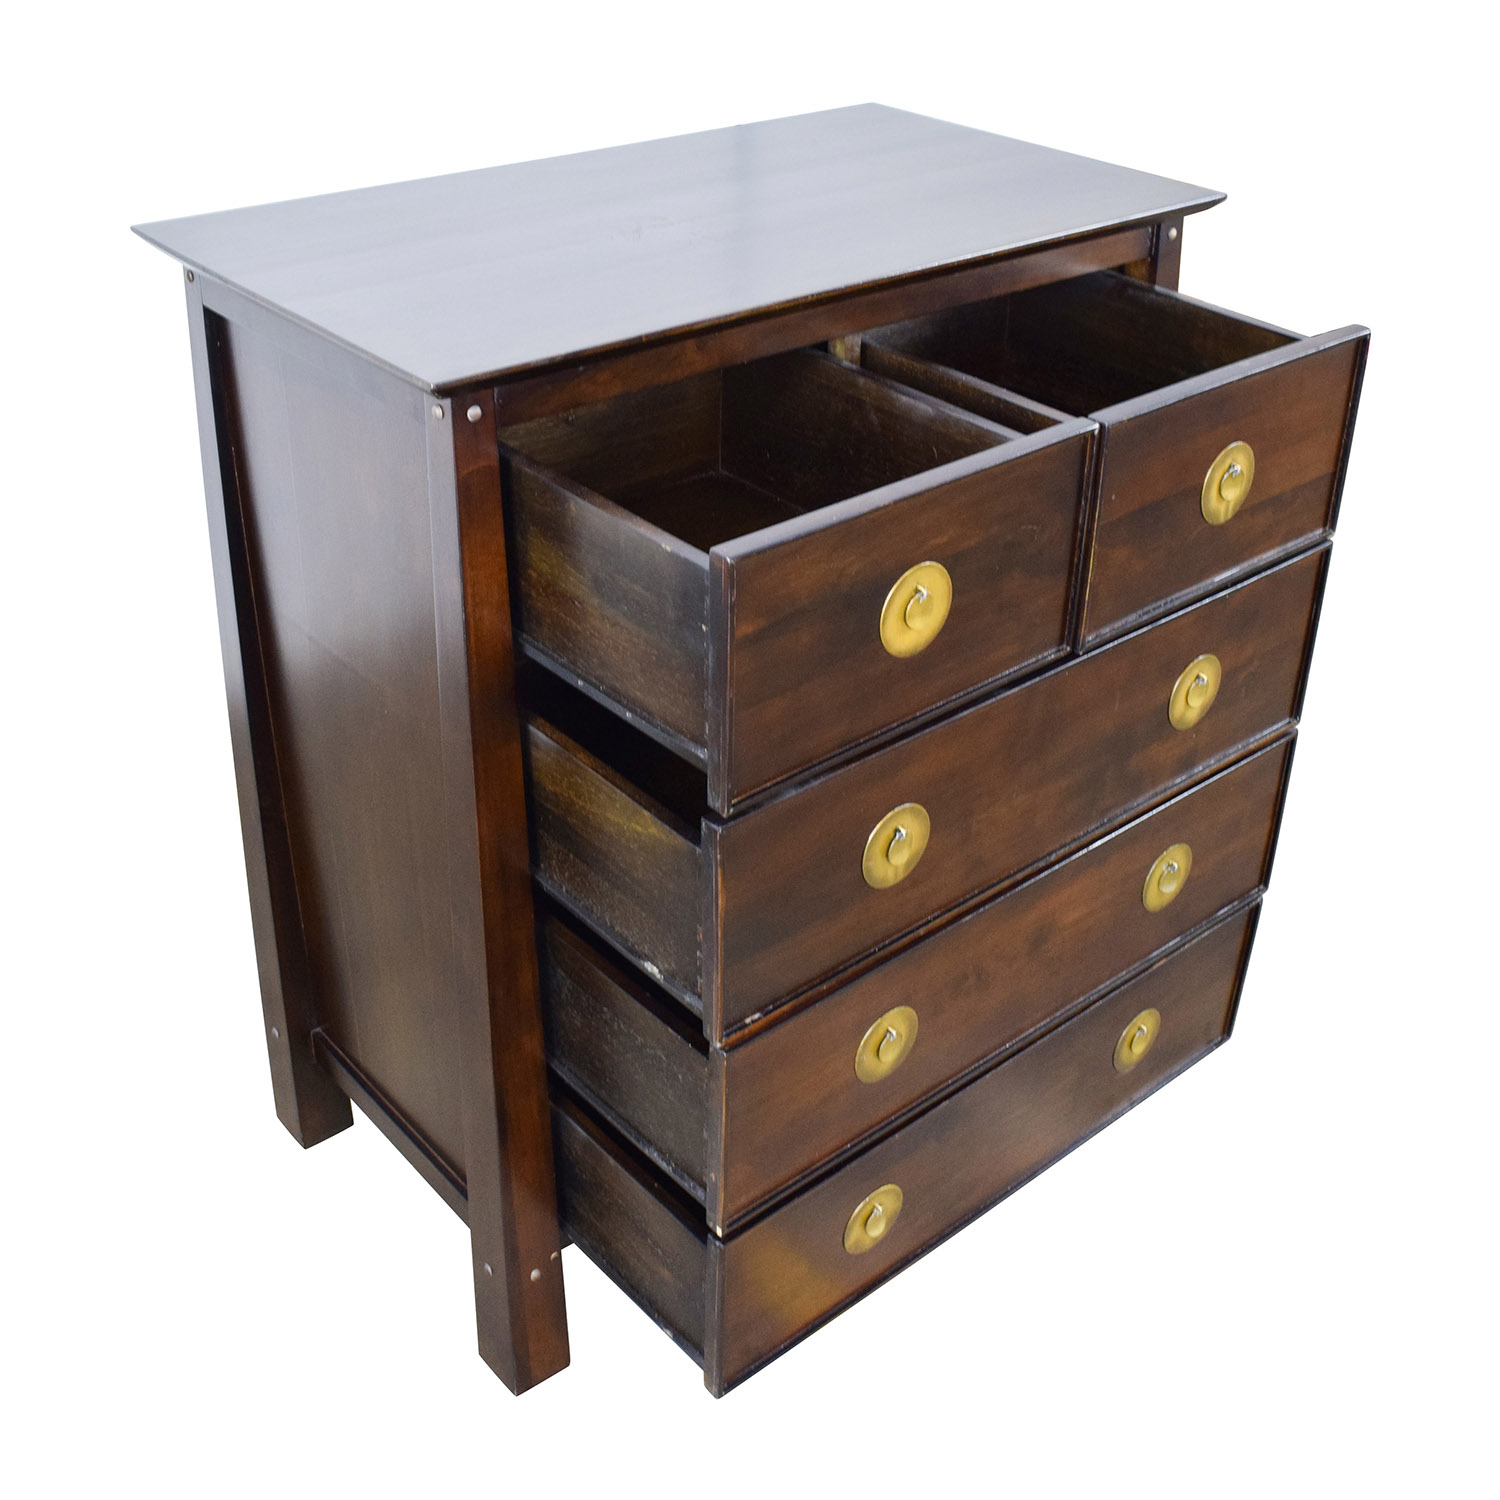 75 off pier 1 imports pier 1 imports shanghai collection espresso chest storage for Pier one imports bedroom furniture